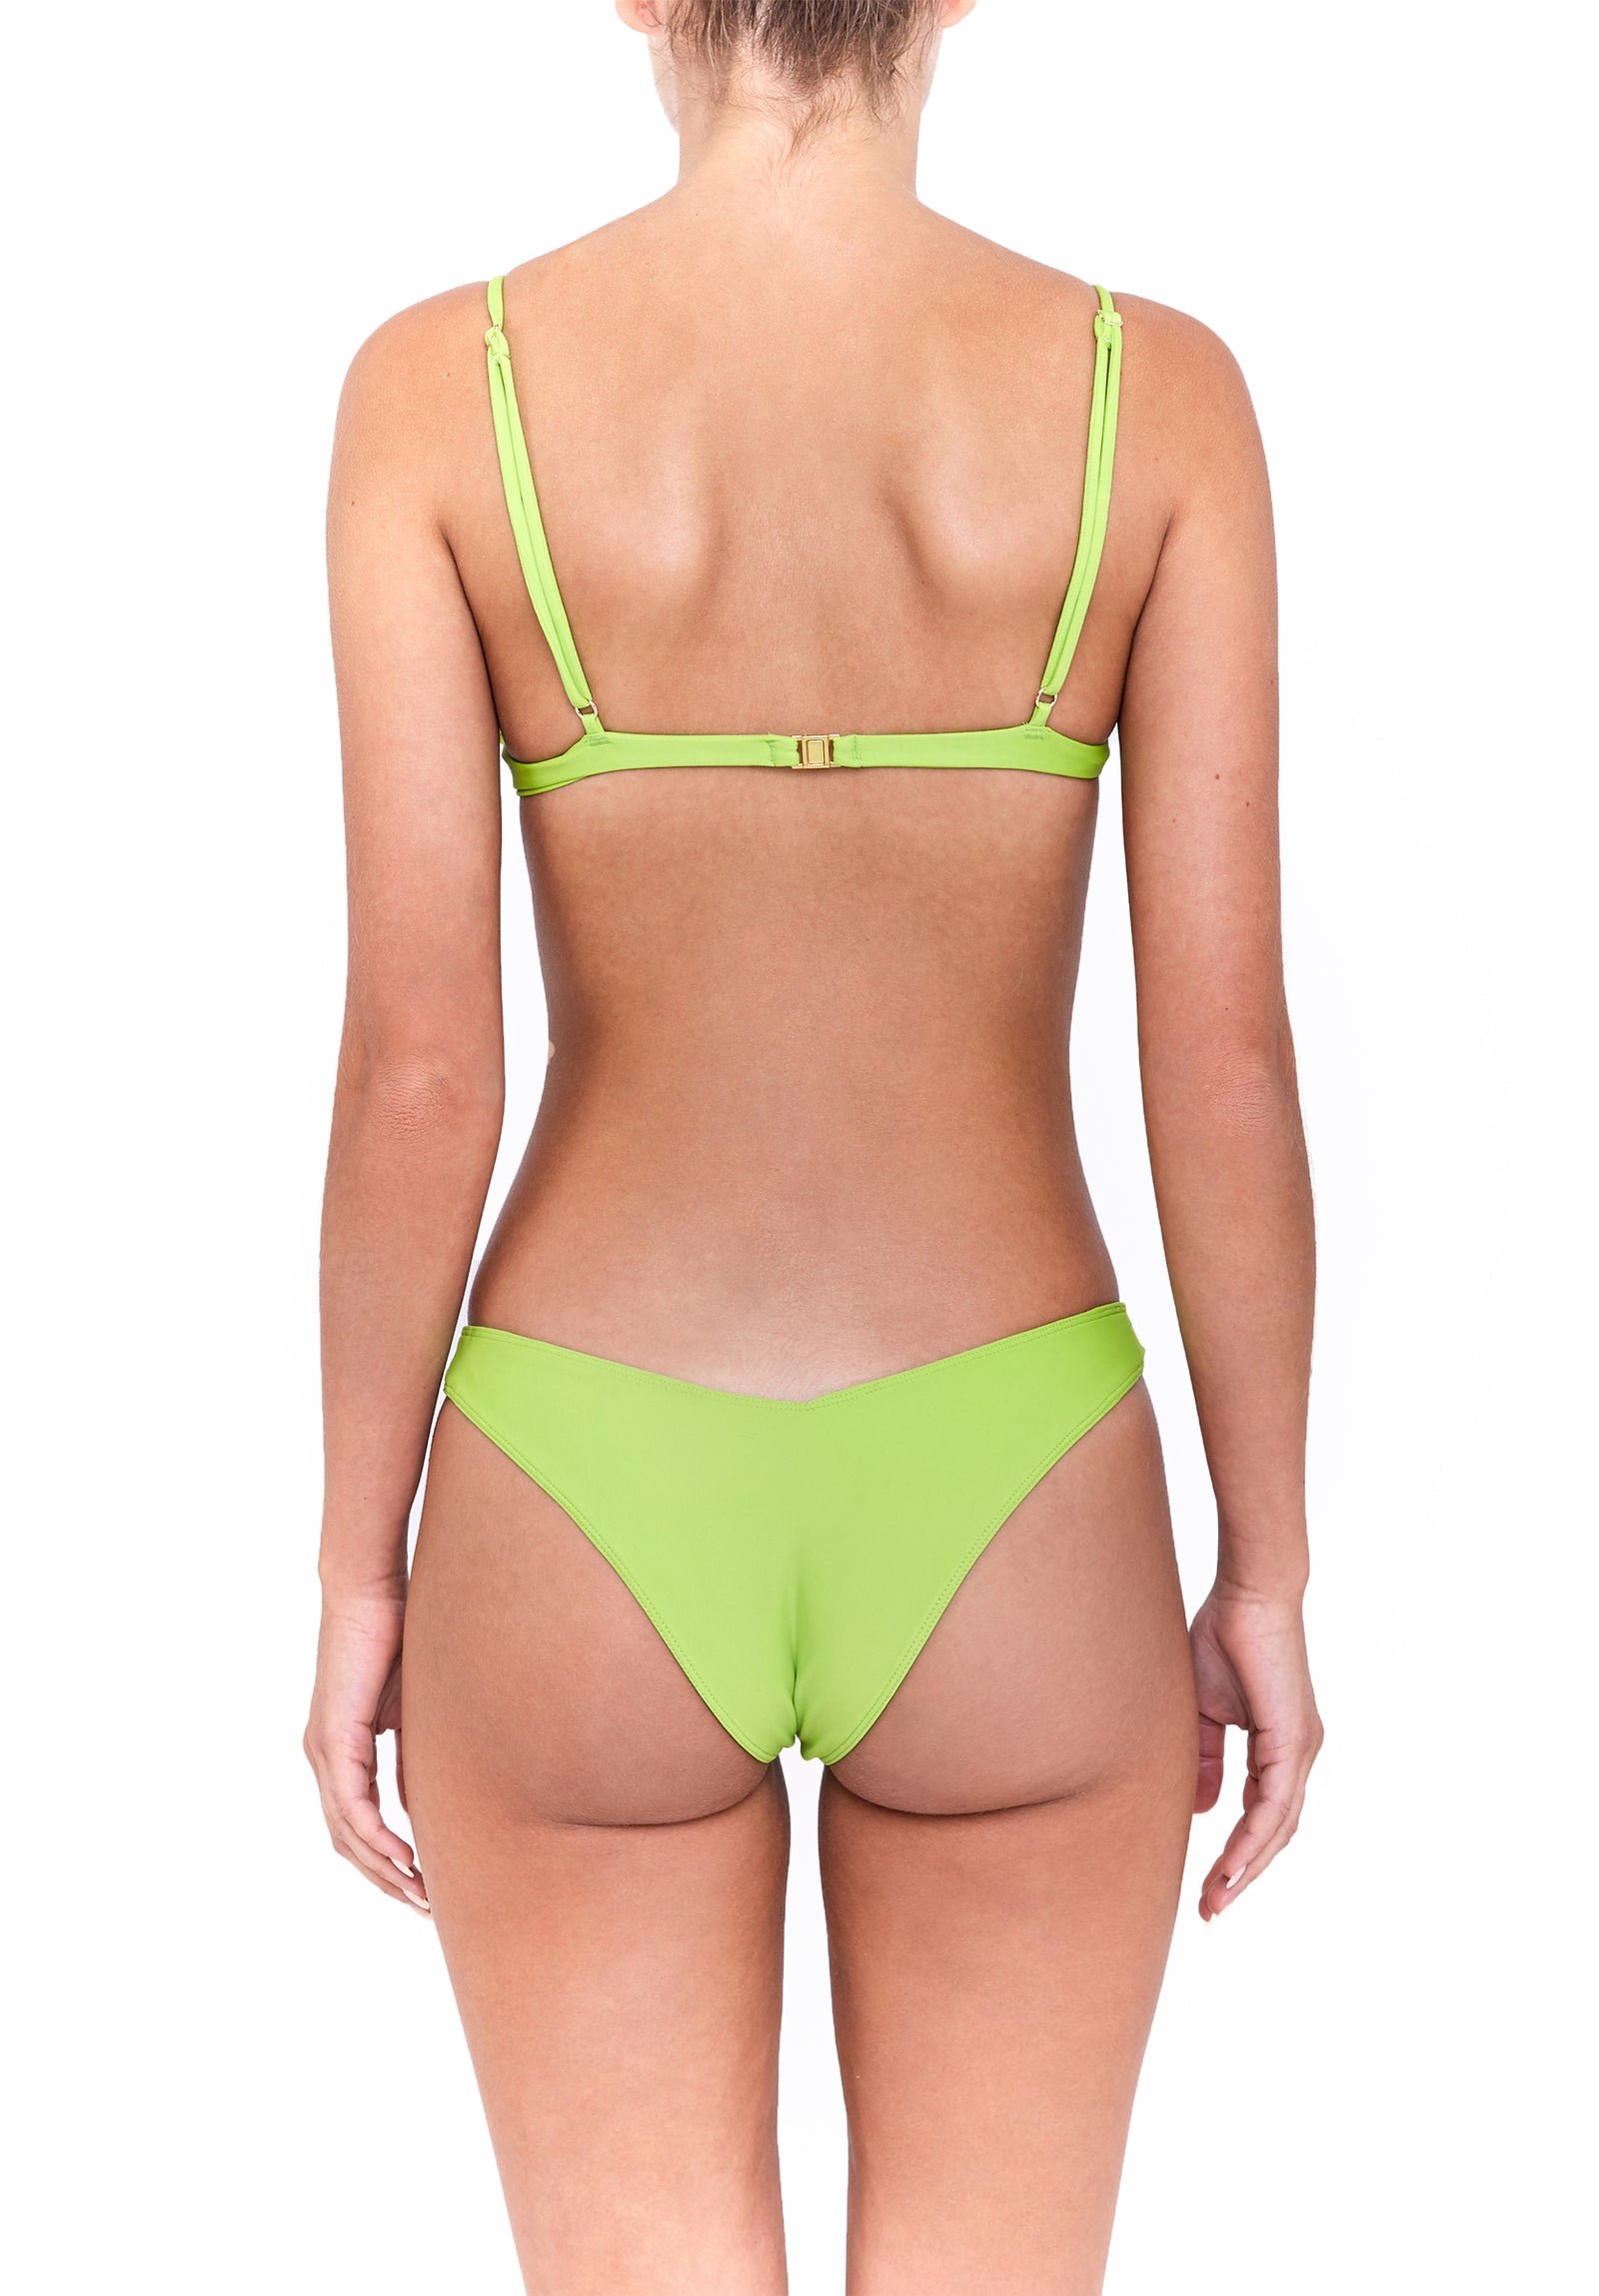 VINO top - lime green